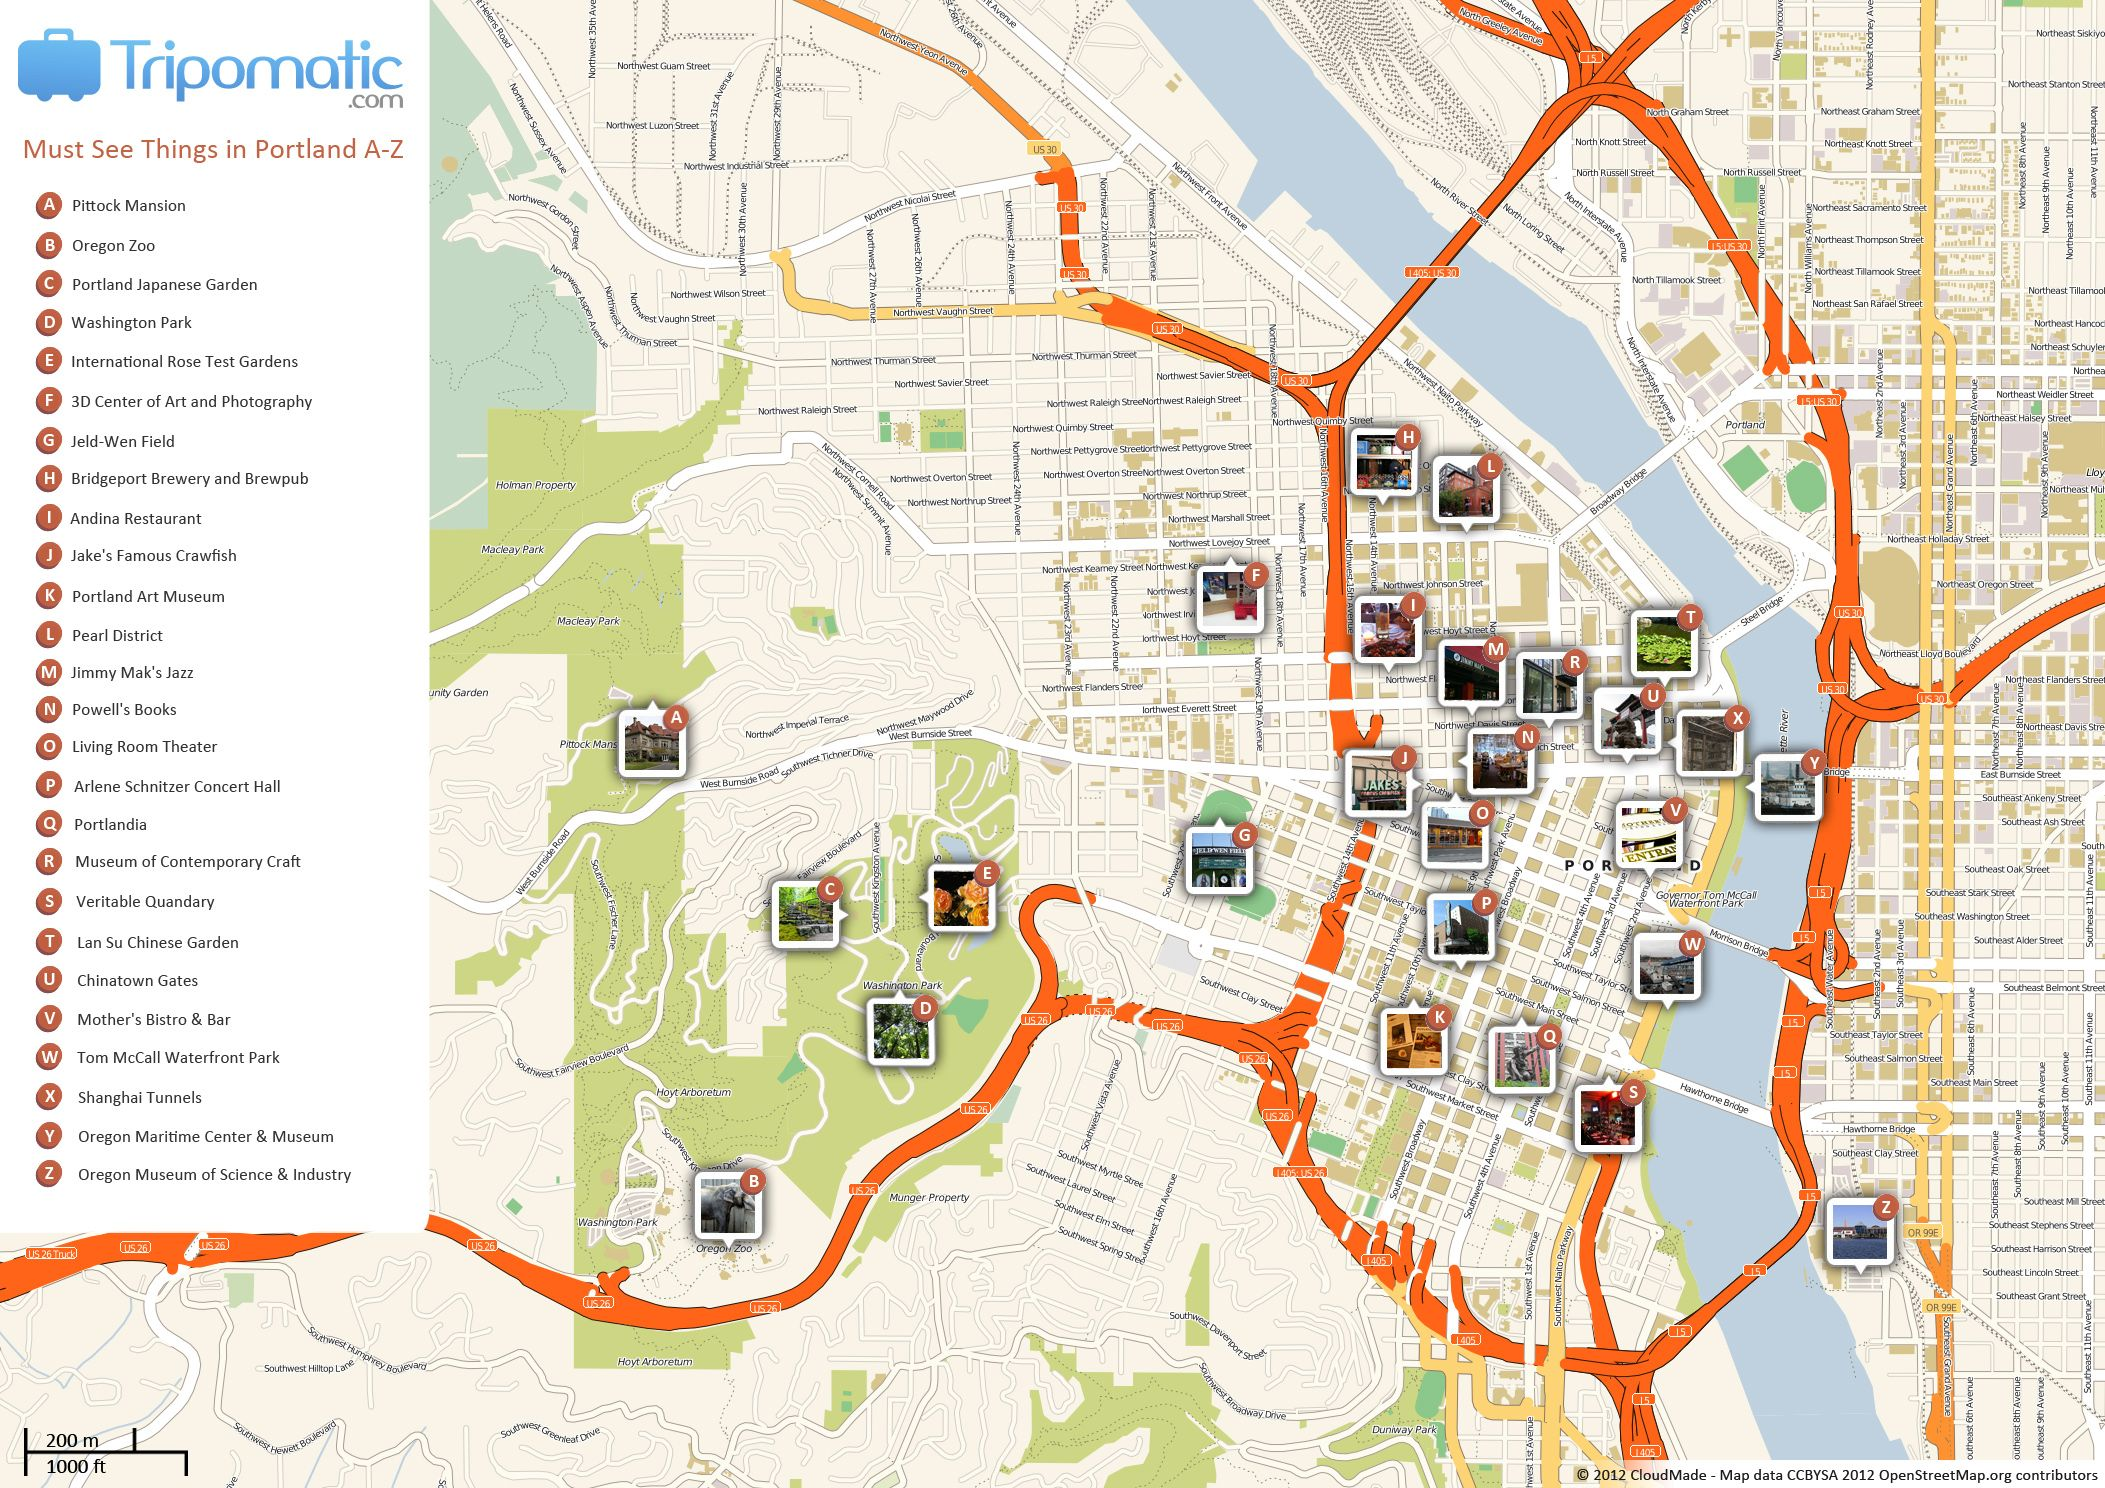 Free Printable Map Of Portland Attractions From Tripomaticcom - Portland oregon on the usa map